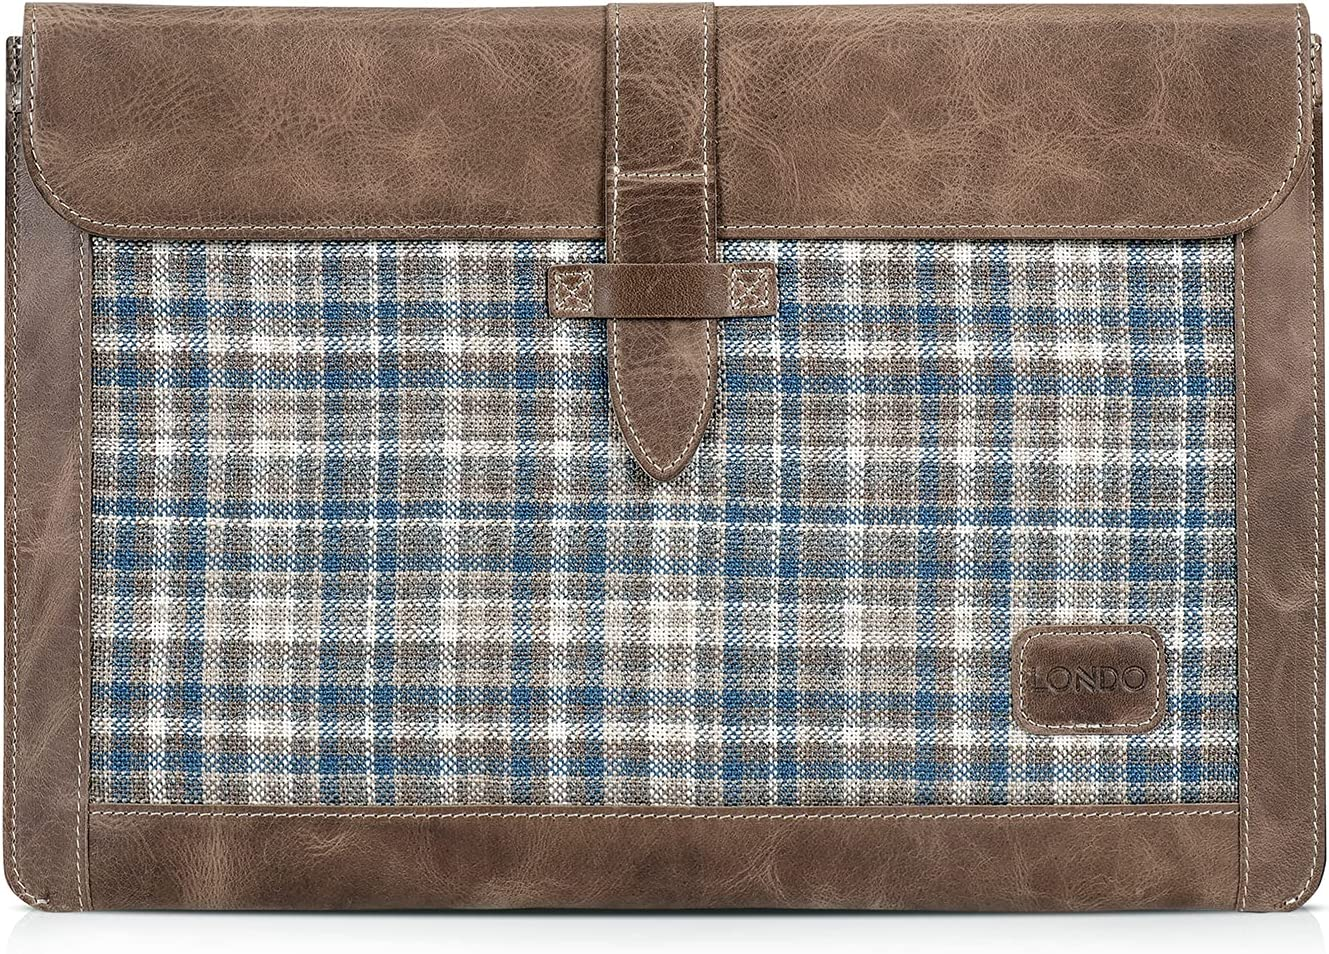 Londo Top Grain Leather Sale Special Price San Jose Mall MacBook Bag for - Laptop Sleeve